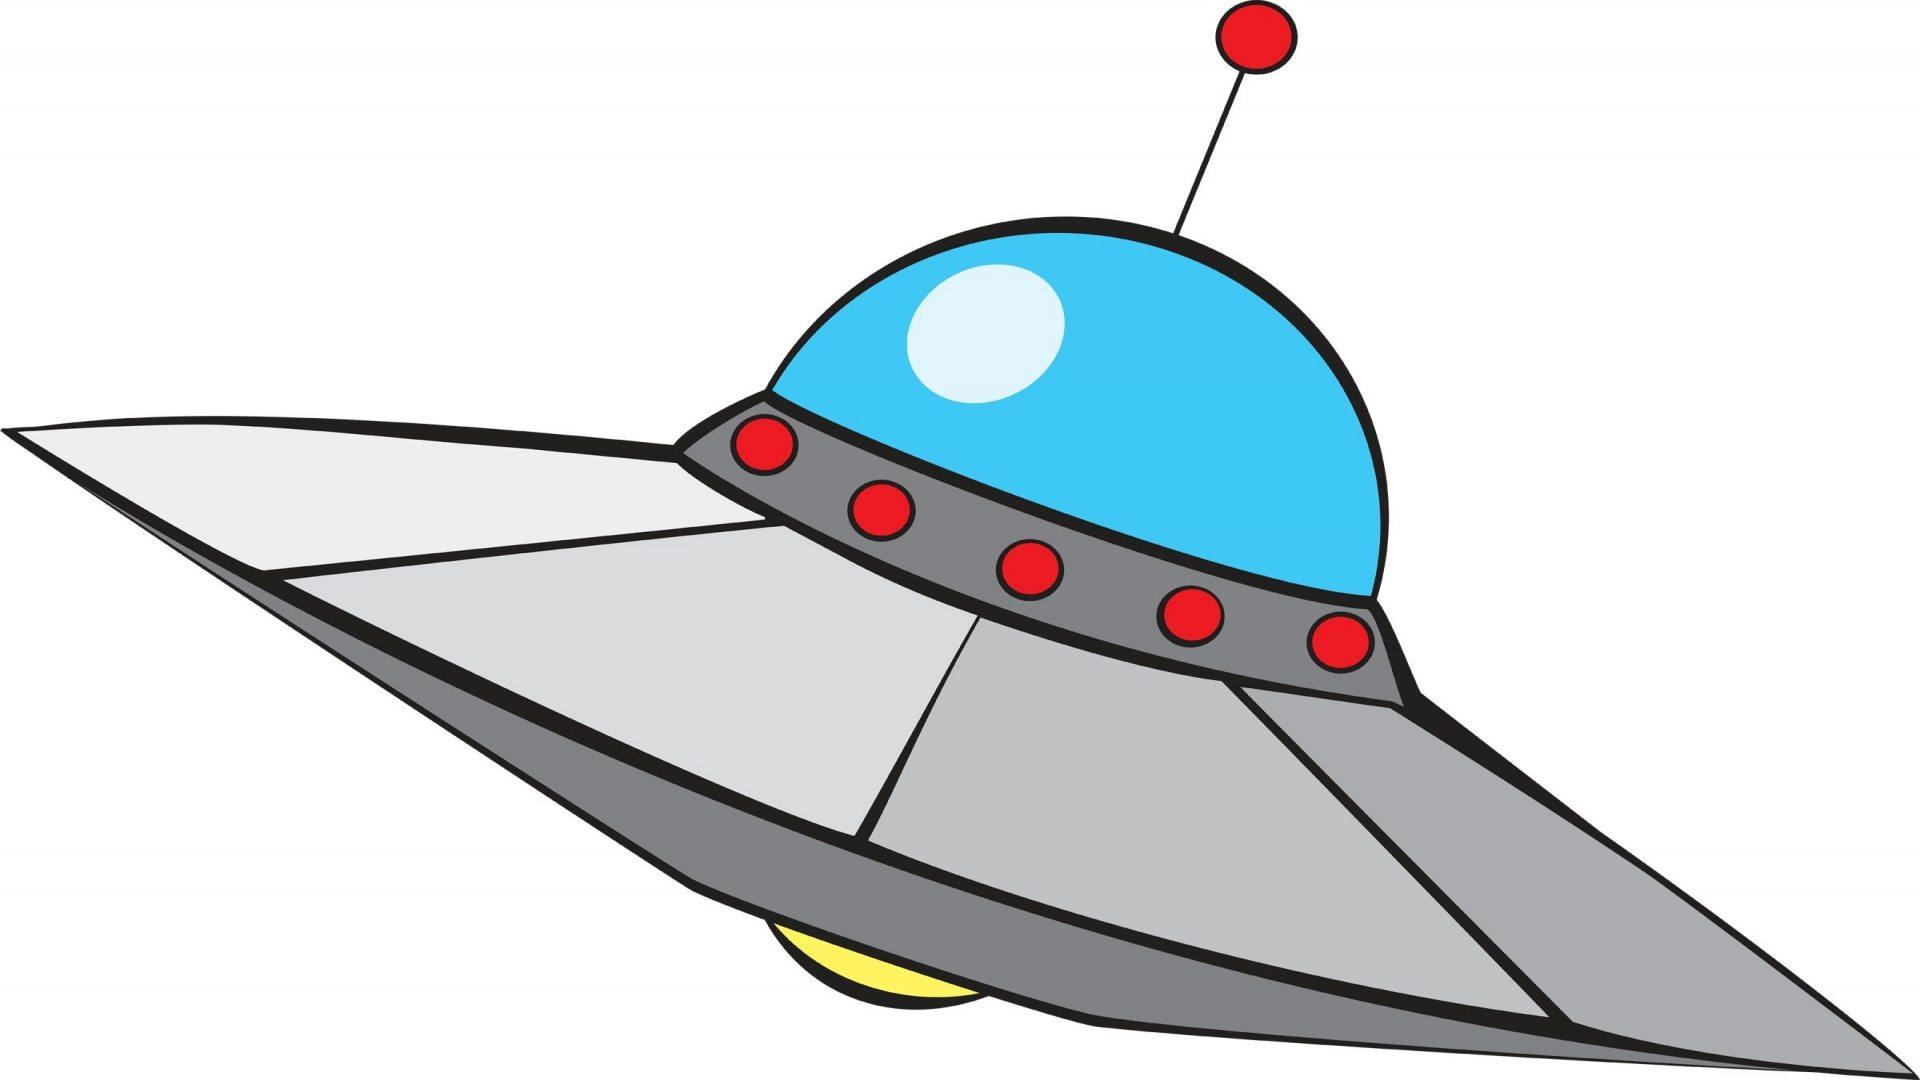 alien spaceship clipart at getdrawings com free for personal use rh getdrawings com spaceship clipart png spaceship clipart png